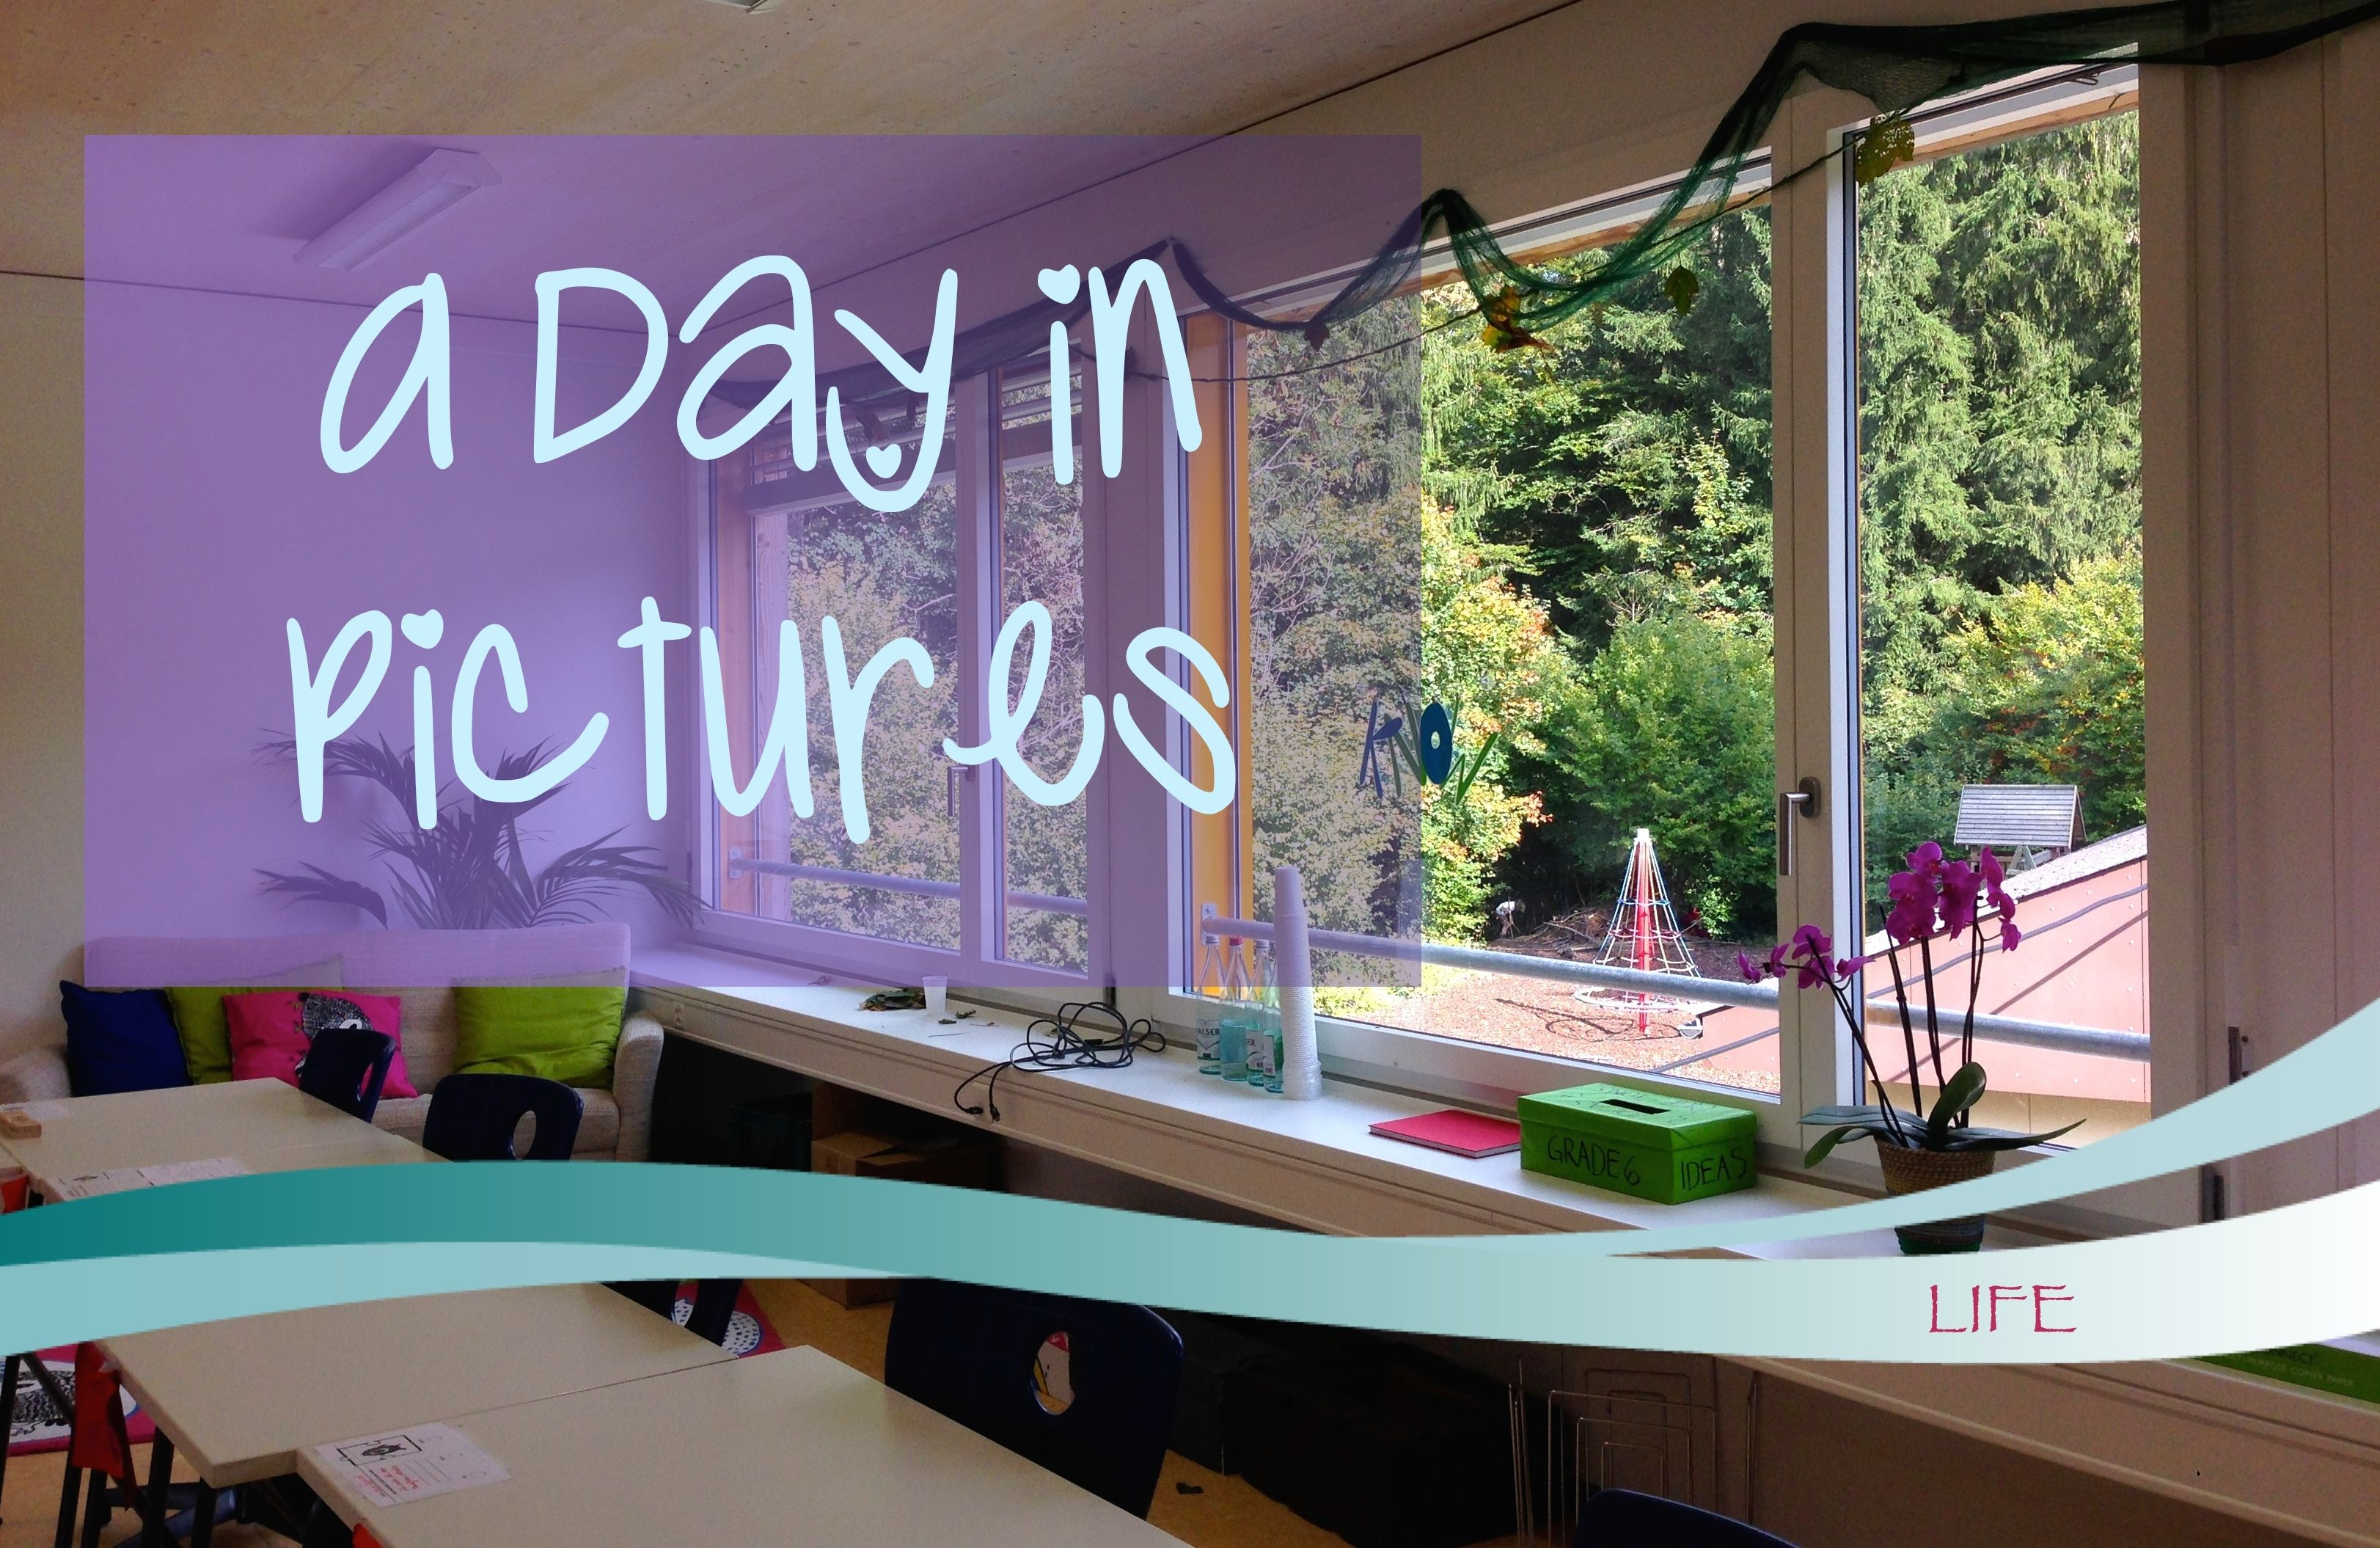 A Day in Pictures - http://skysbookcorner.blogspot.co.uk/2015/11/a-day-in-pictures.html - A typical day at school for me. #lbloggers